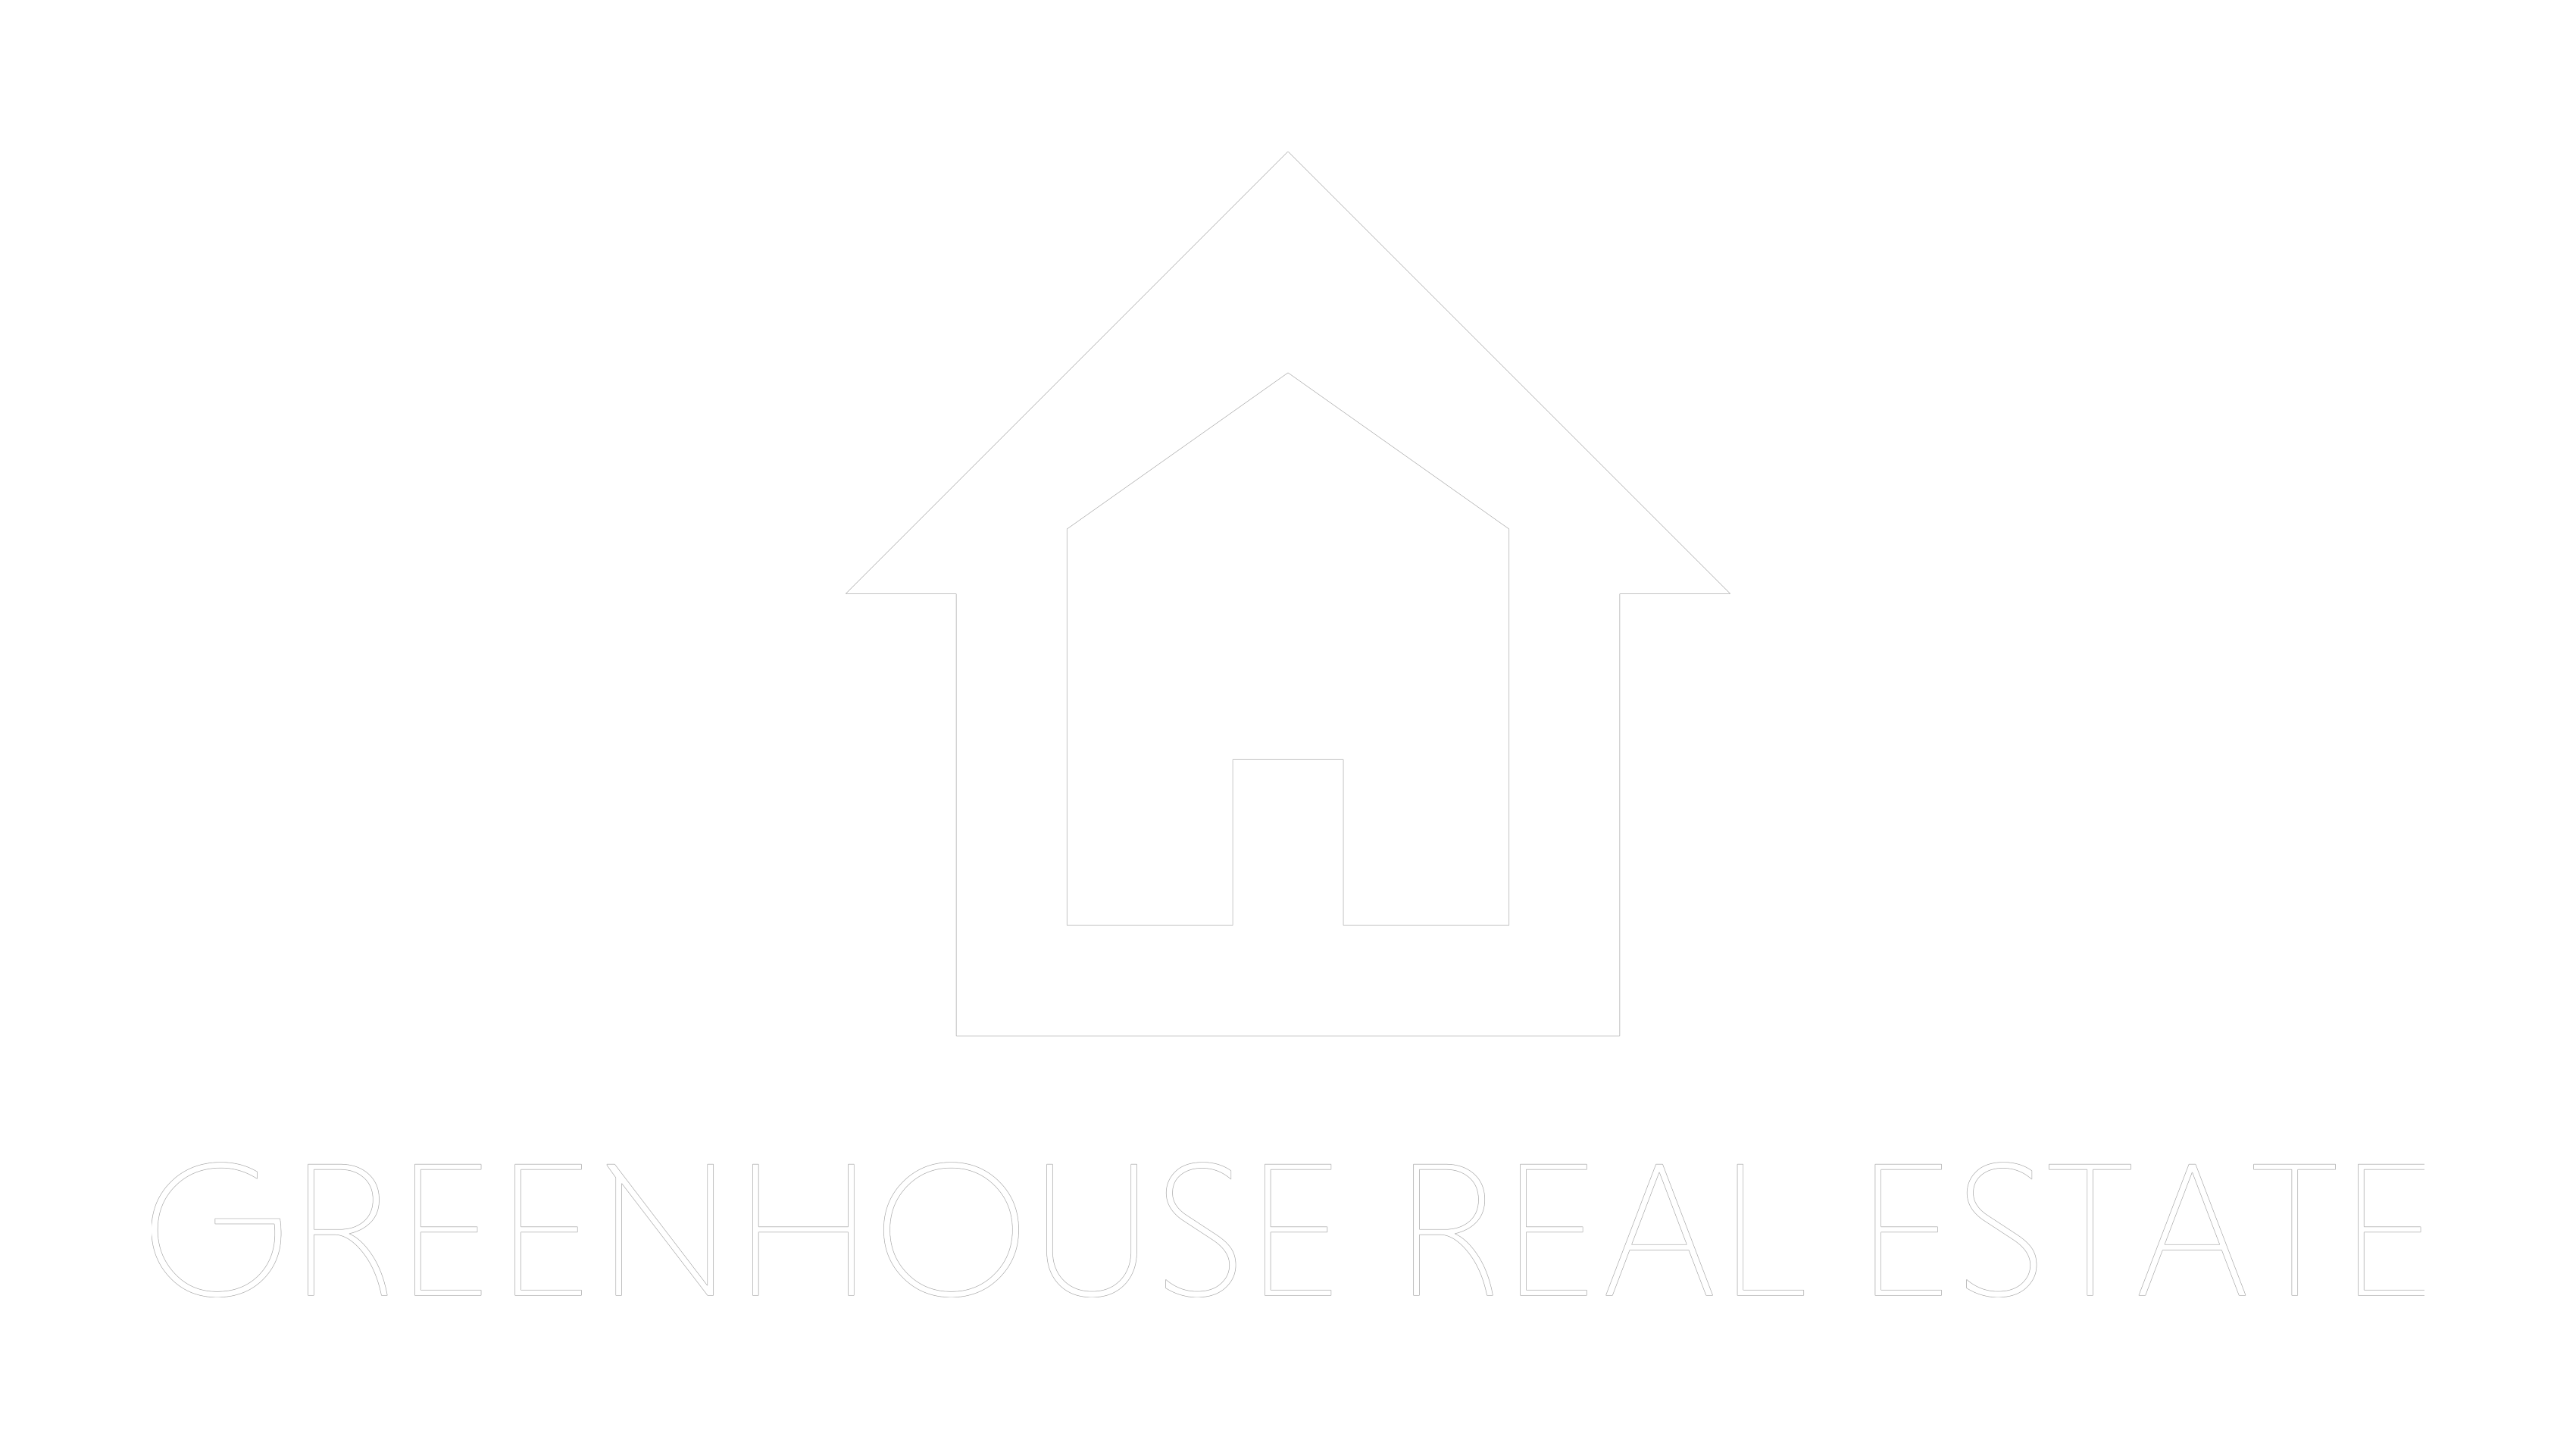 Greenhouse Real Estate